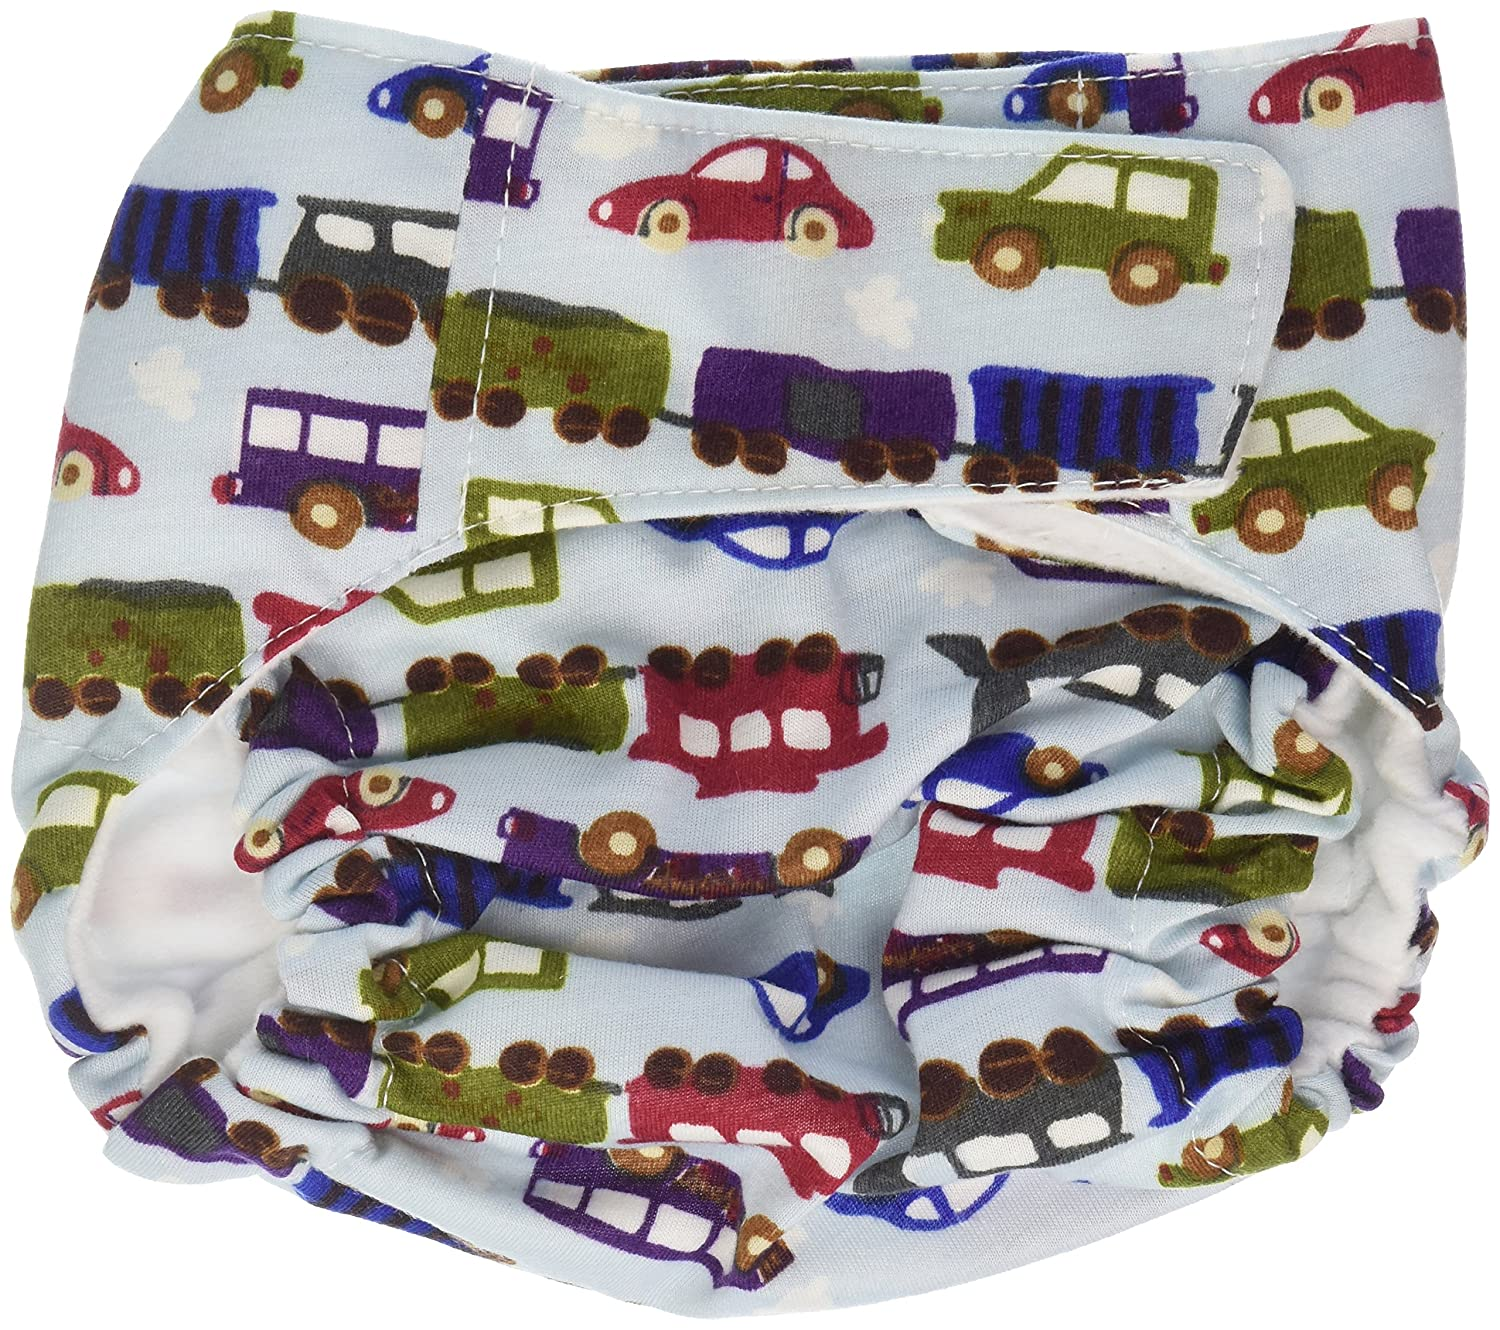 CuteyBaby That's a Wrap Diaper Cover, Trains & Cars, Medium